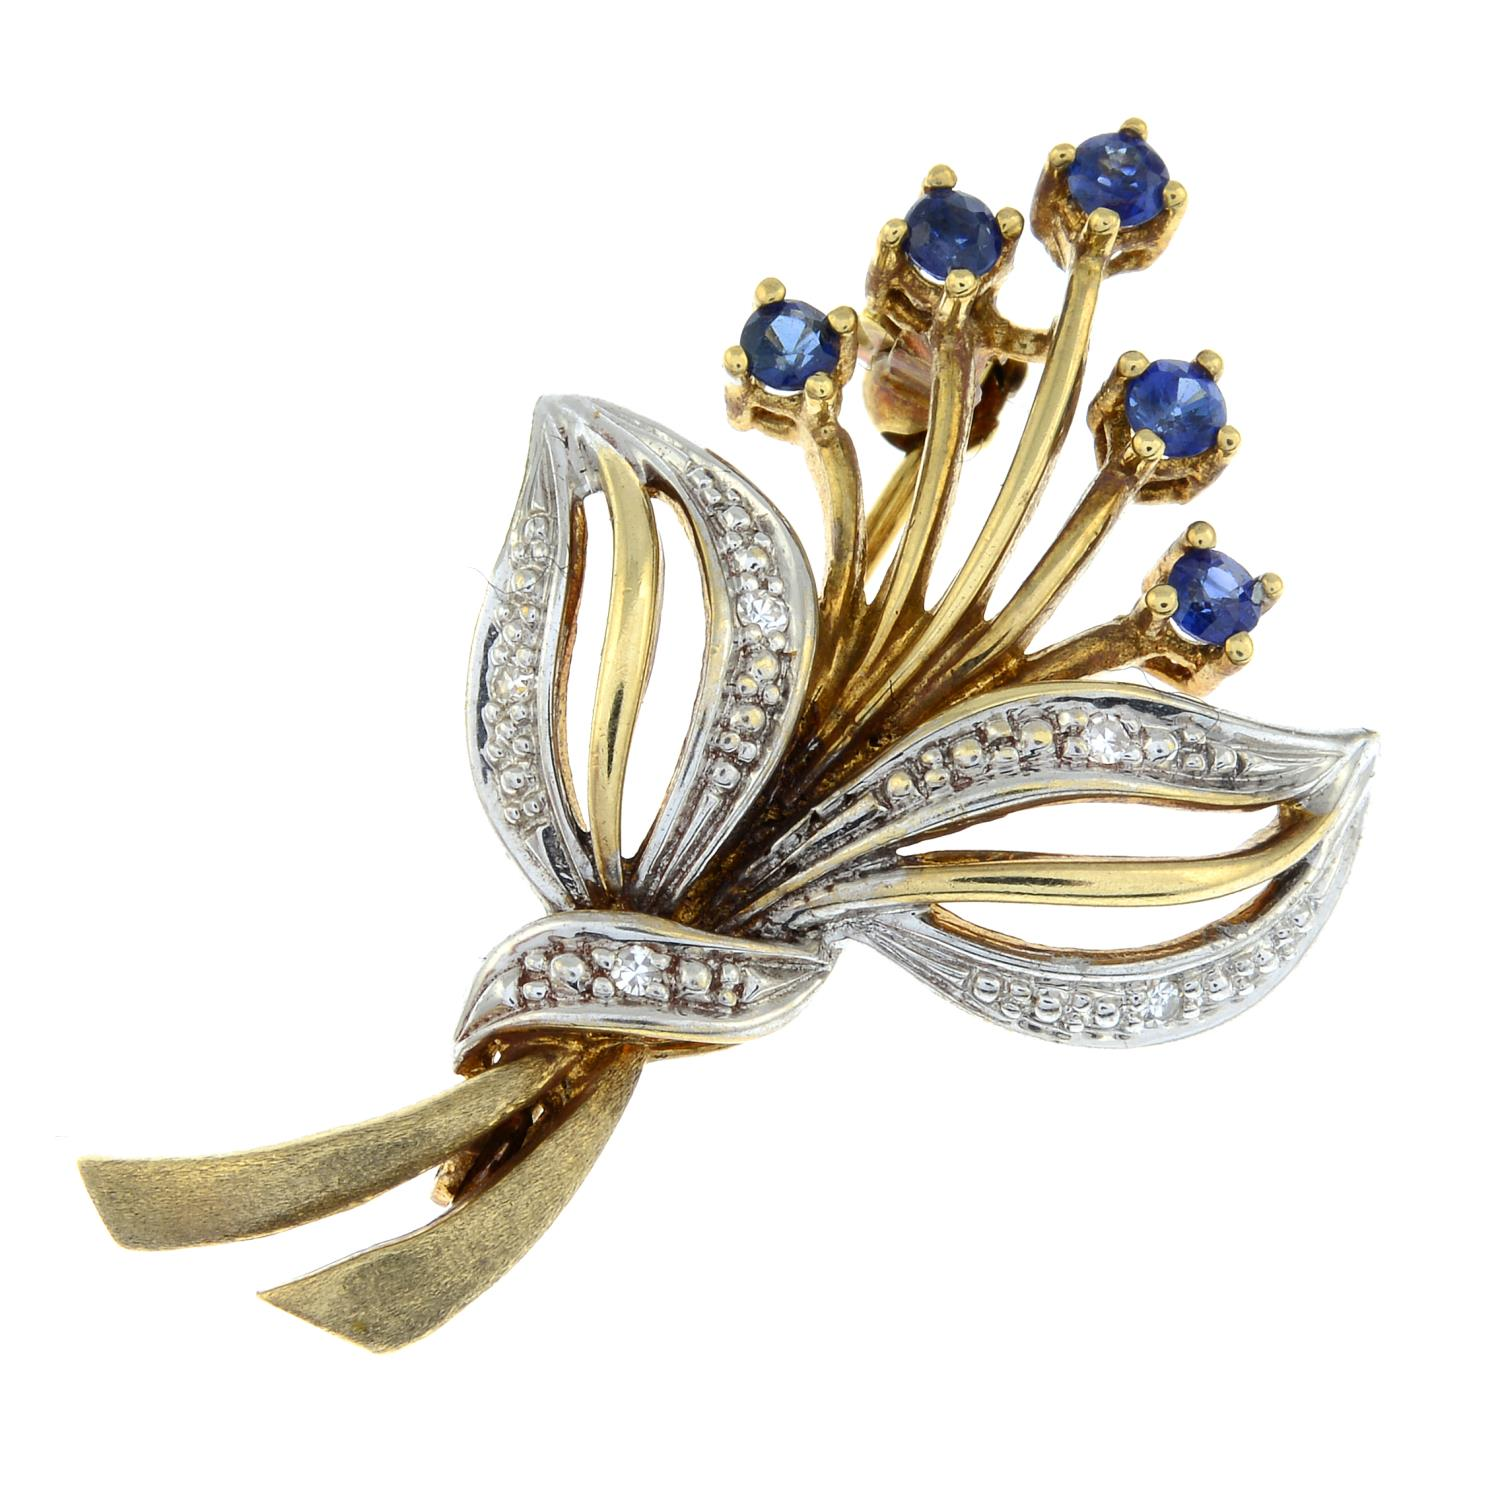 A 9ct gold diamond and sapphire brooch.Total diamond weight 0.03cts stamped to brooch.Hallmarks for